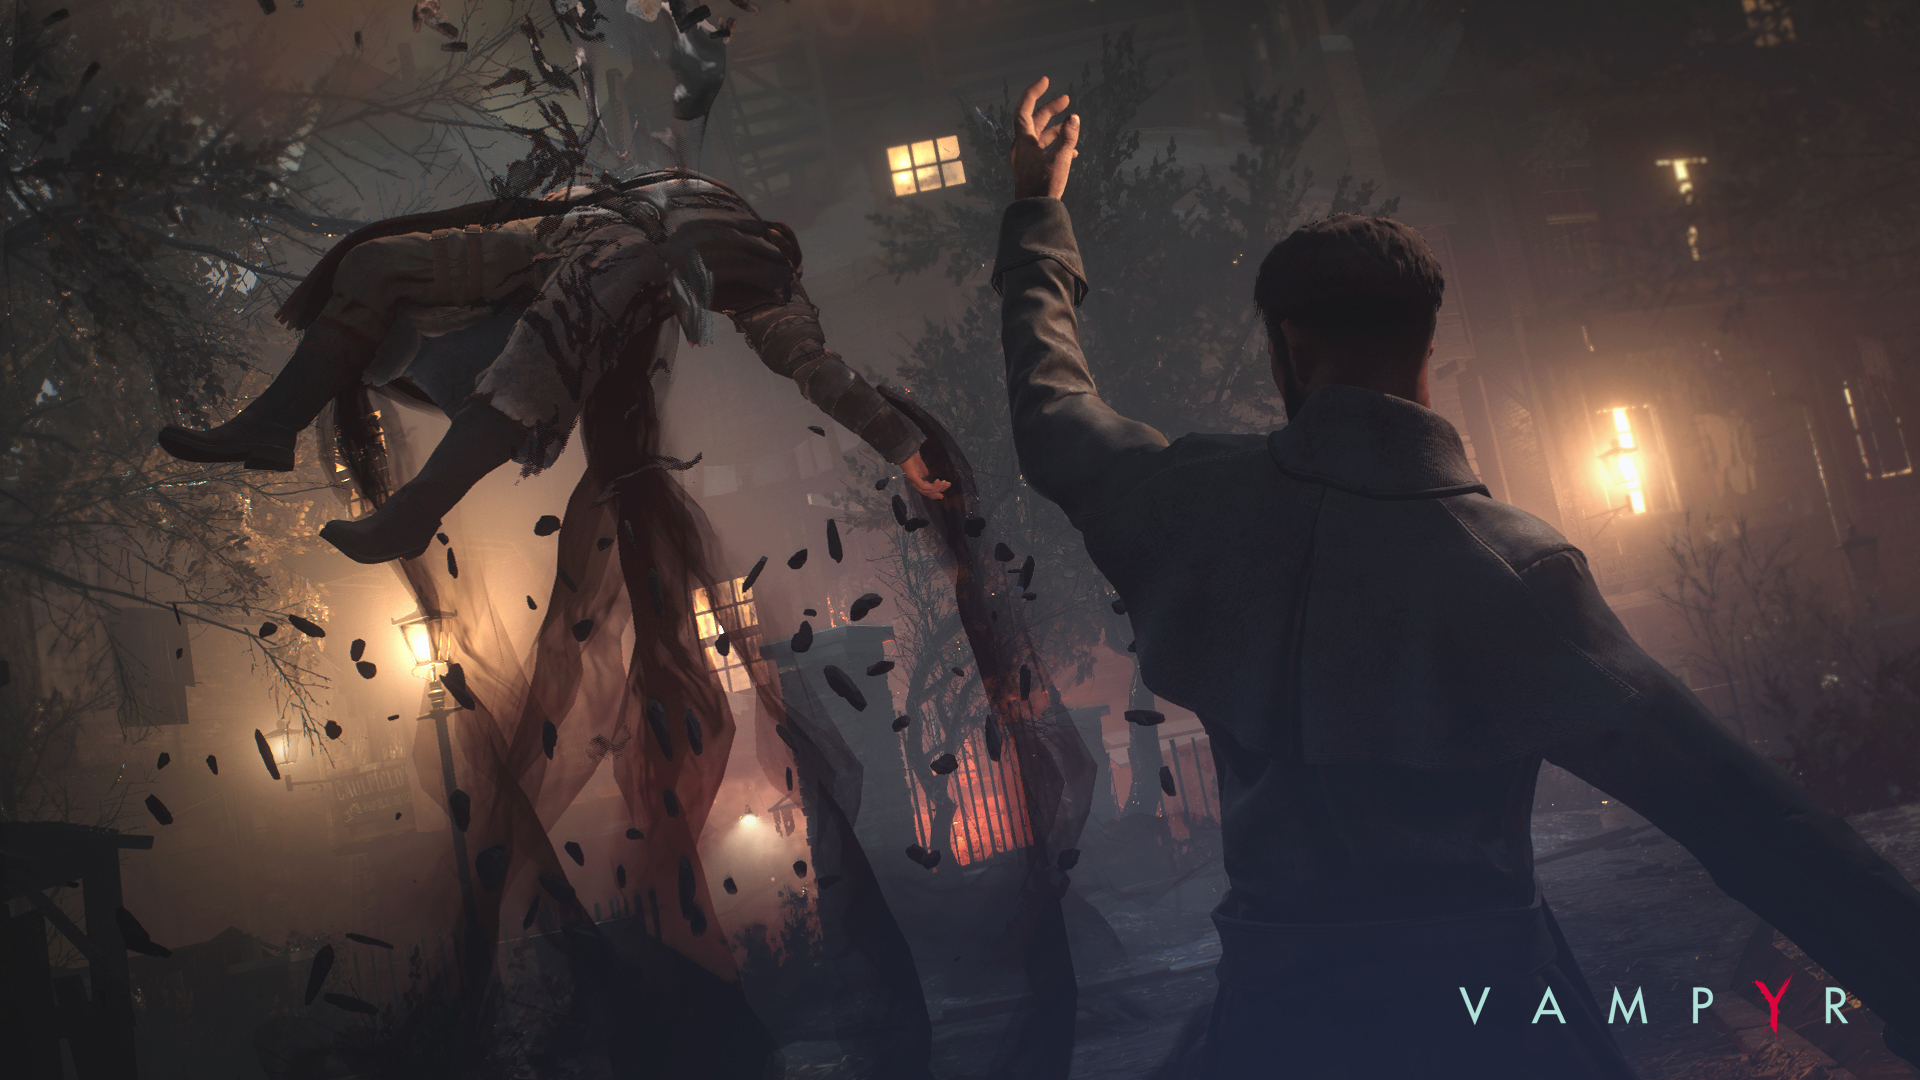 Top 5 Games Coming To Xbox One Next Week Include Vampyr And